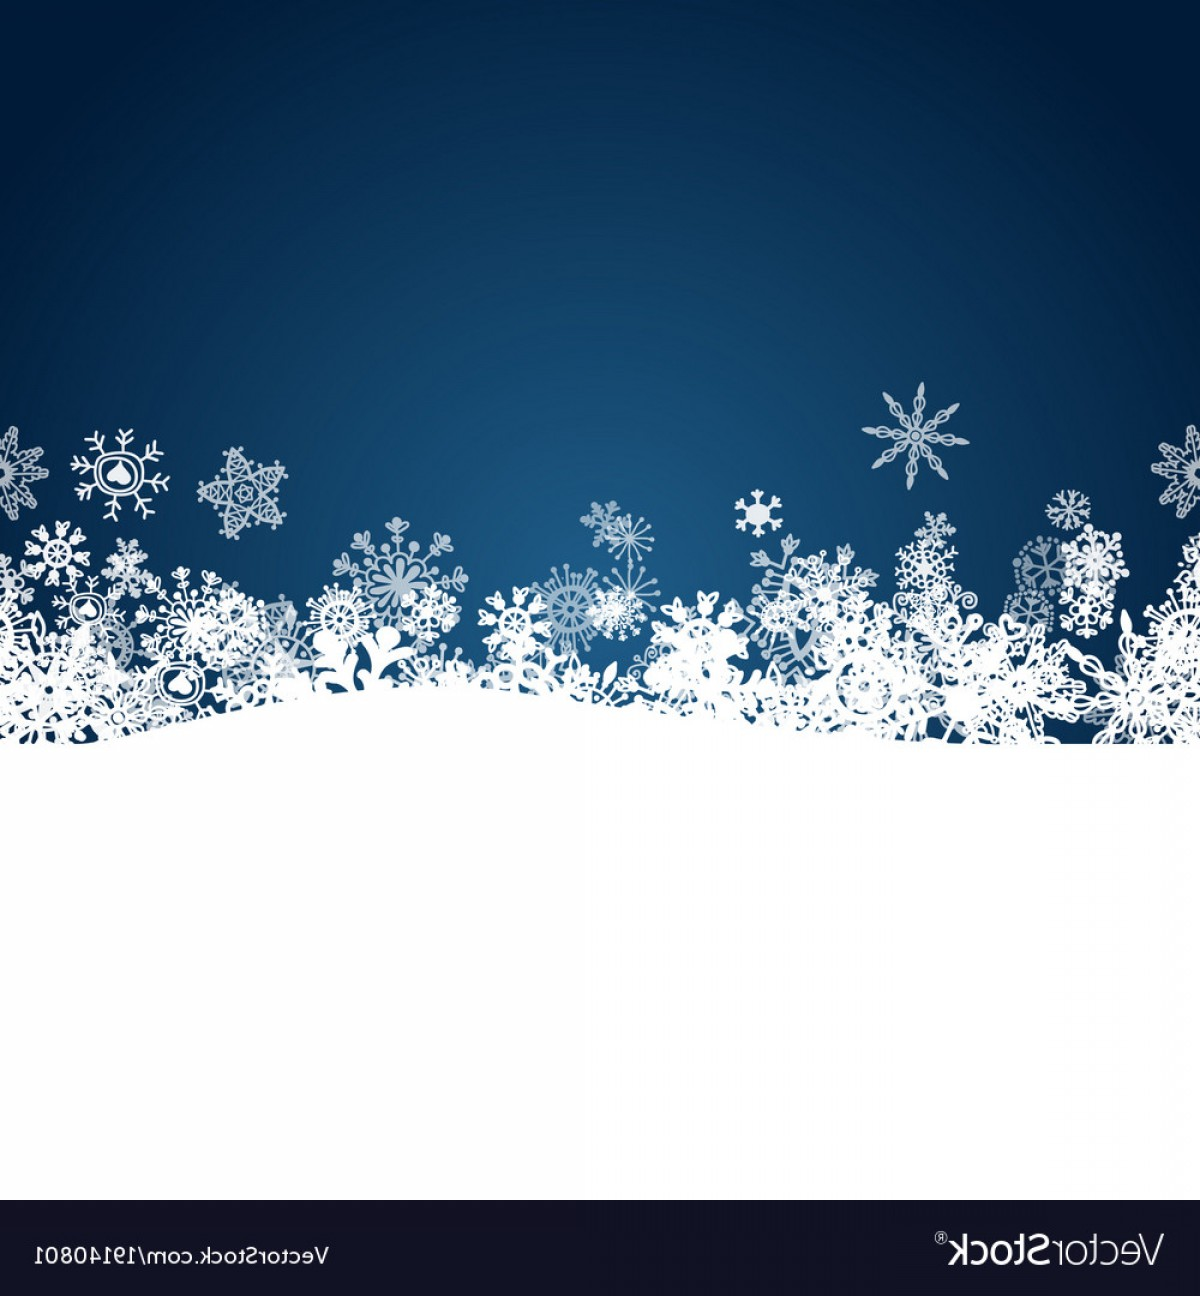 White Snowflake Vector Art: Christmas Blue Background With White Snowflakes Vector